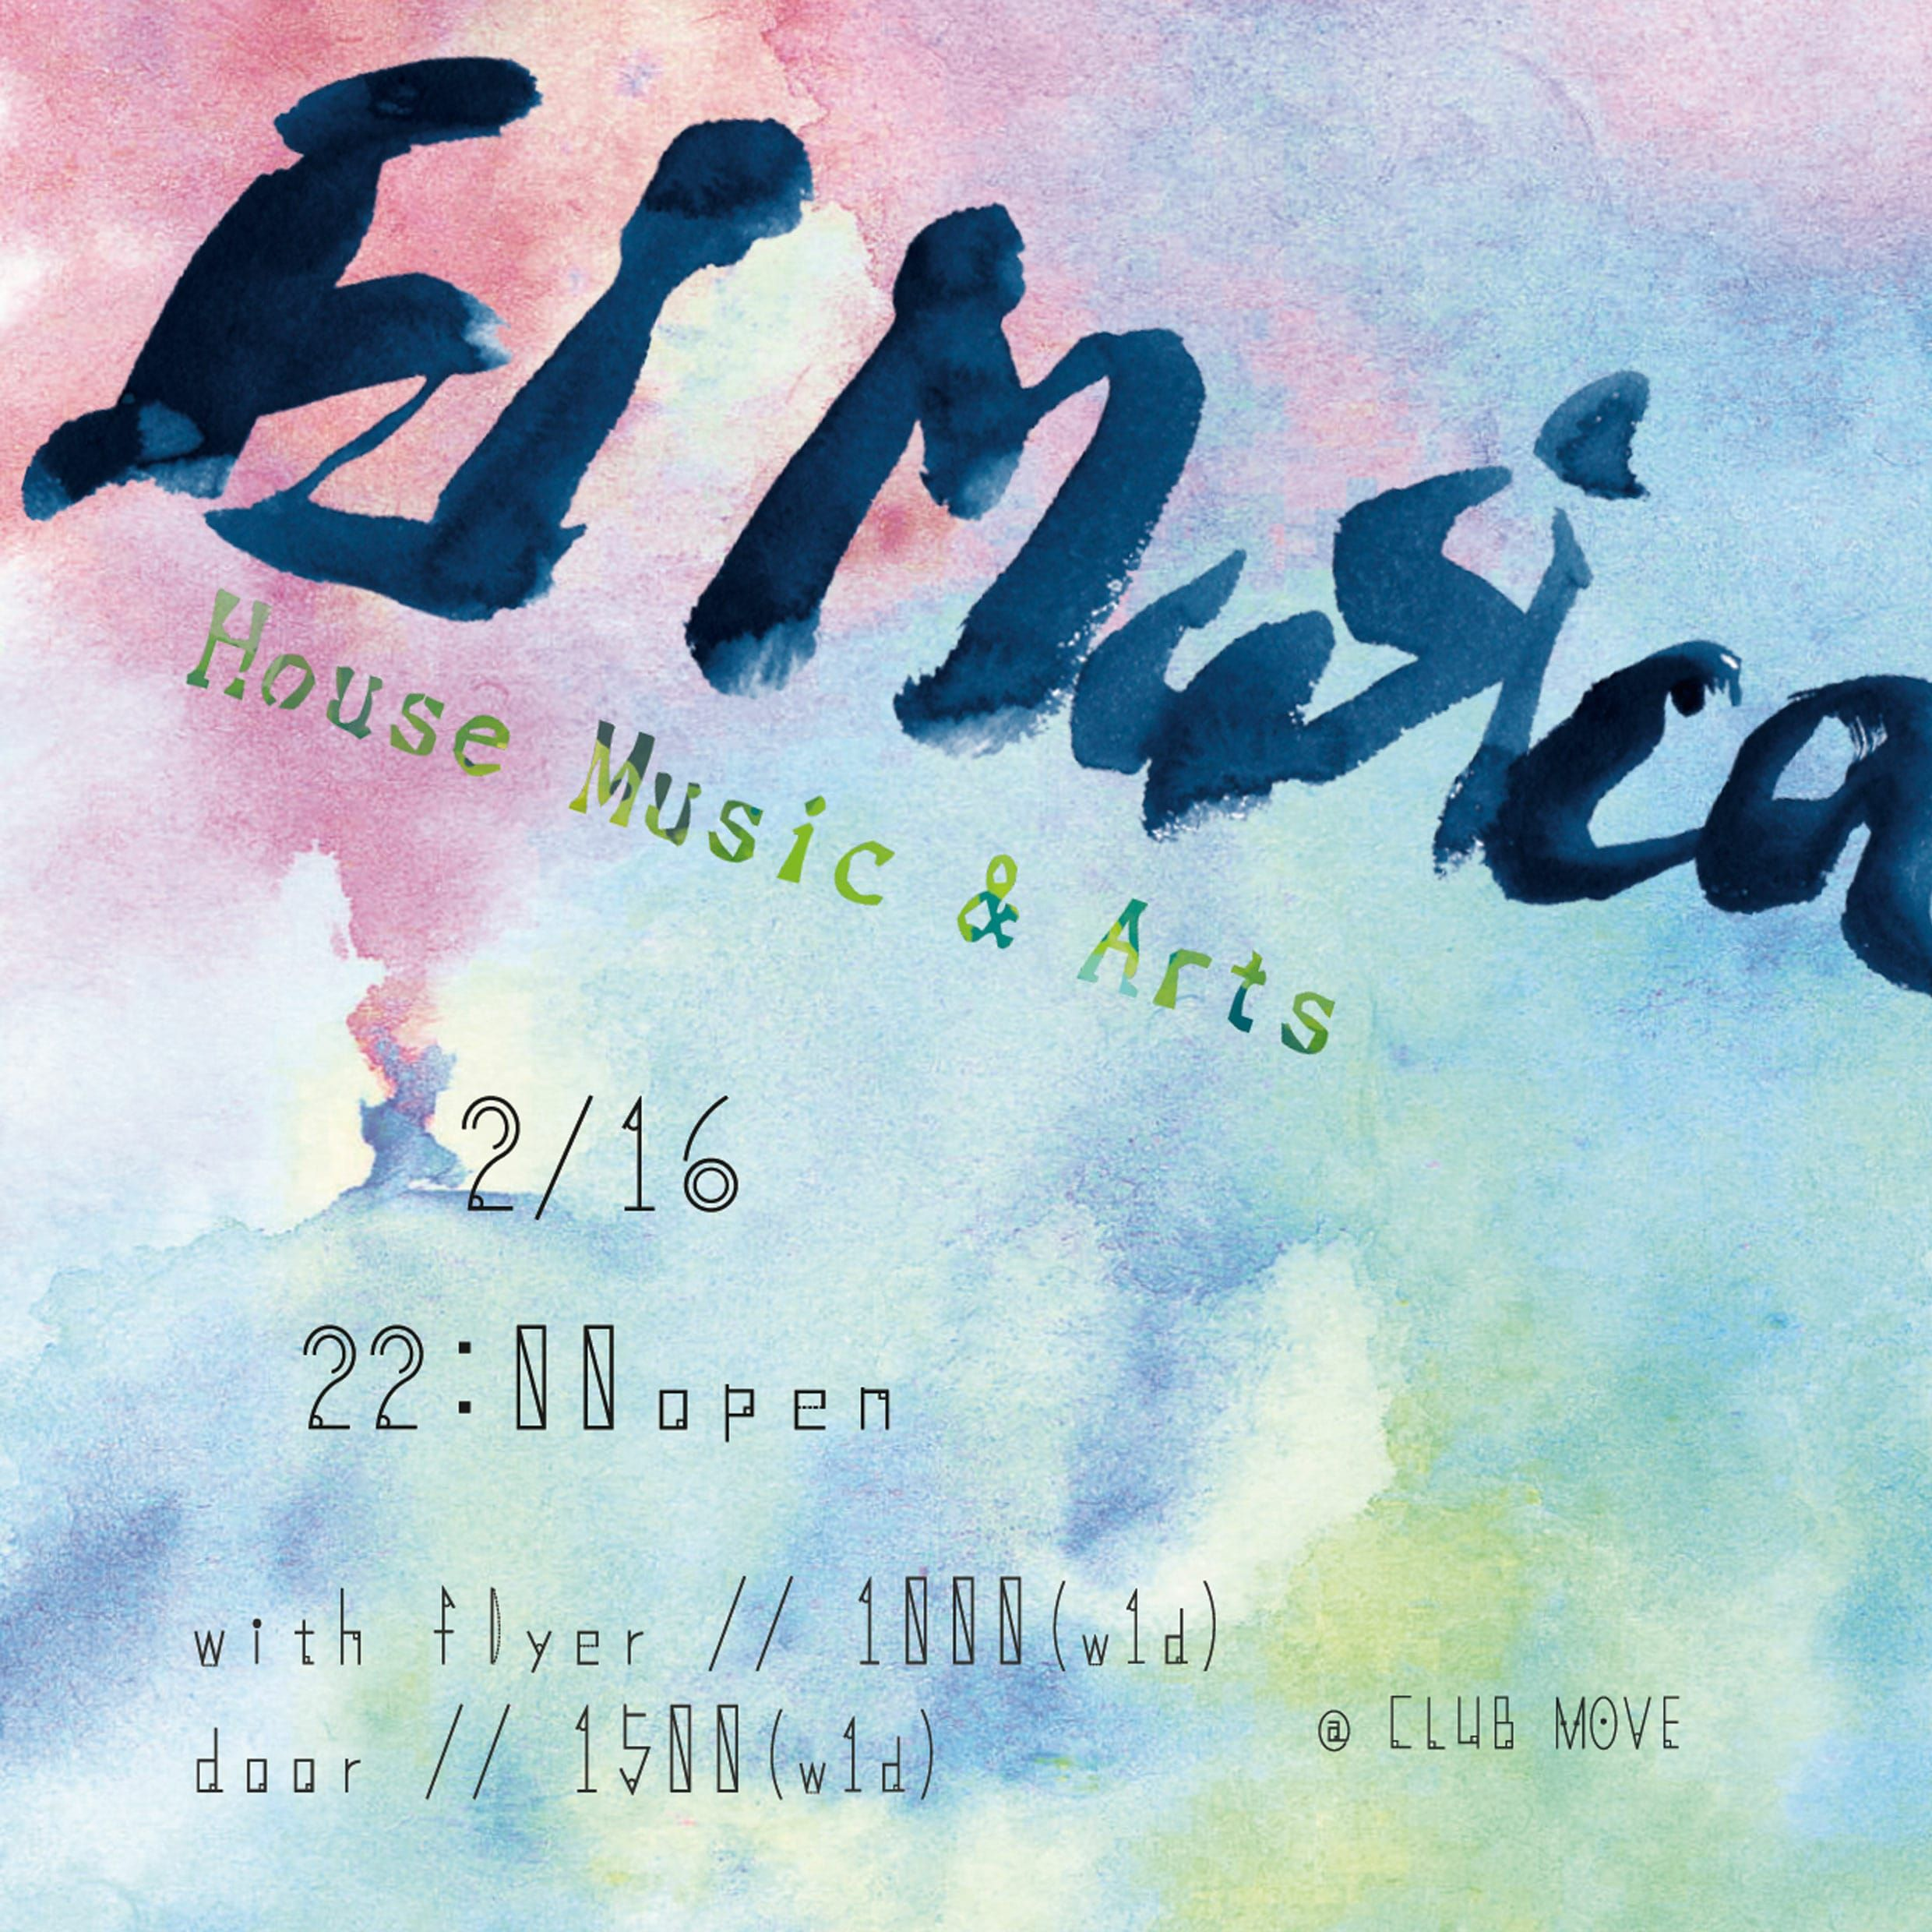 House & Exotic Music 『El Musica』